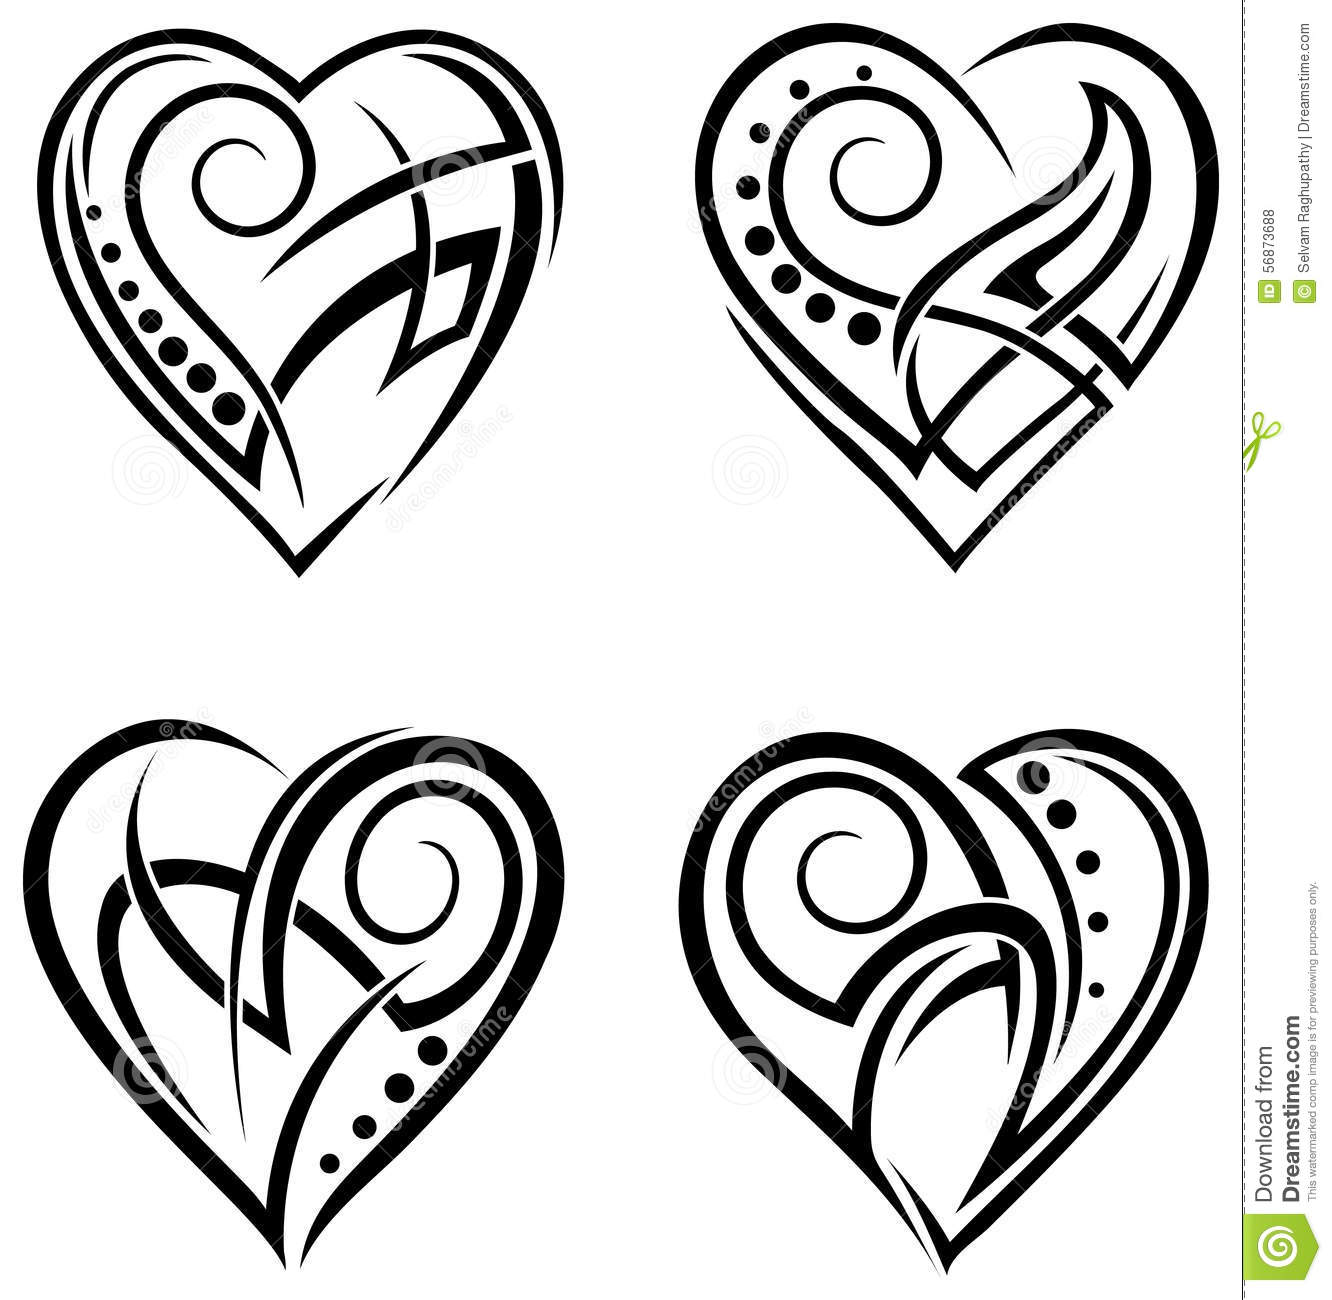 Heart Tattoo Line Drawing : Heart design tattoo set stock vector illustration of